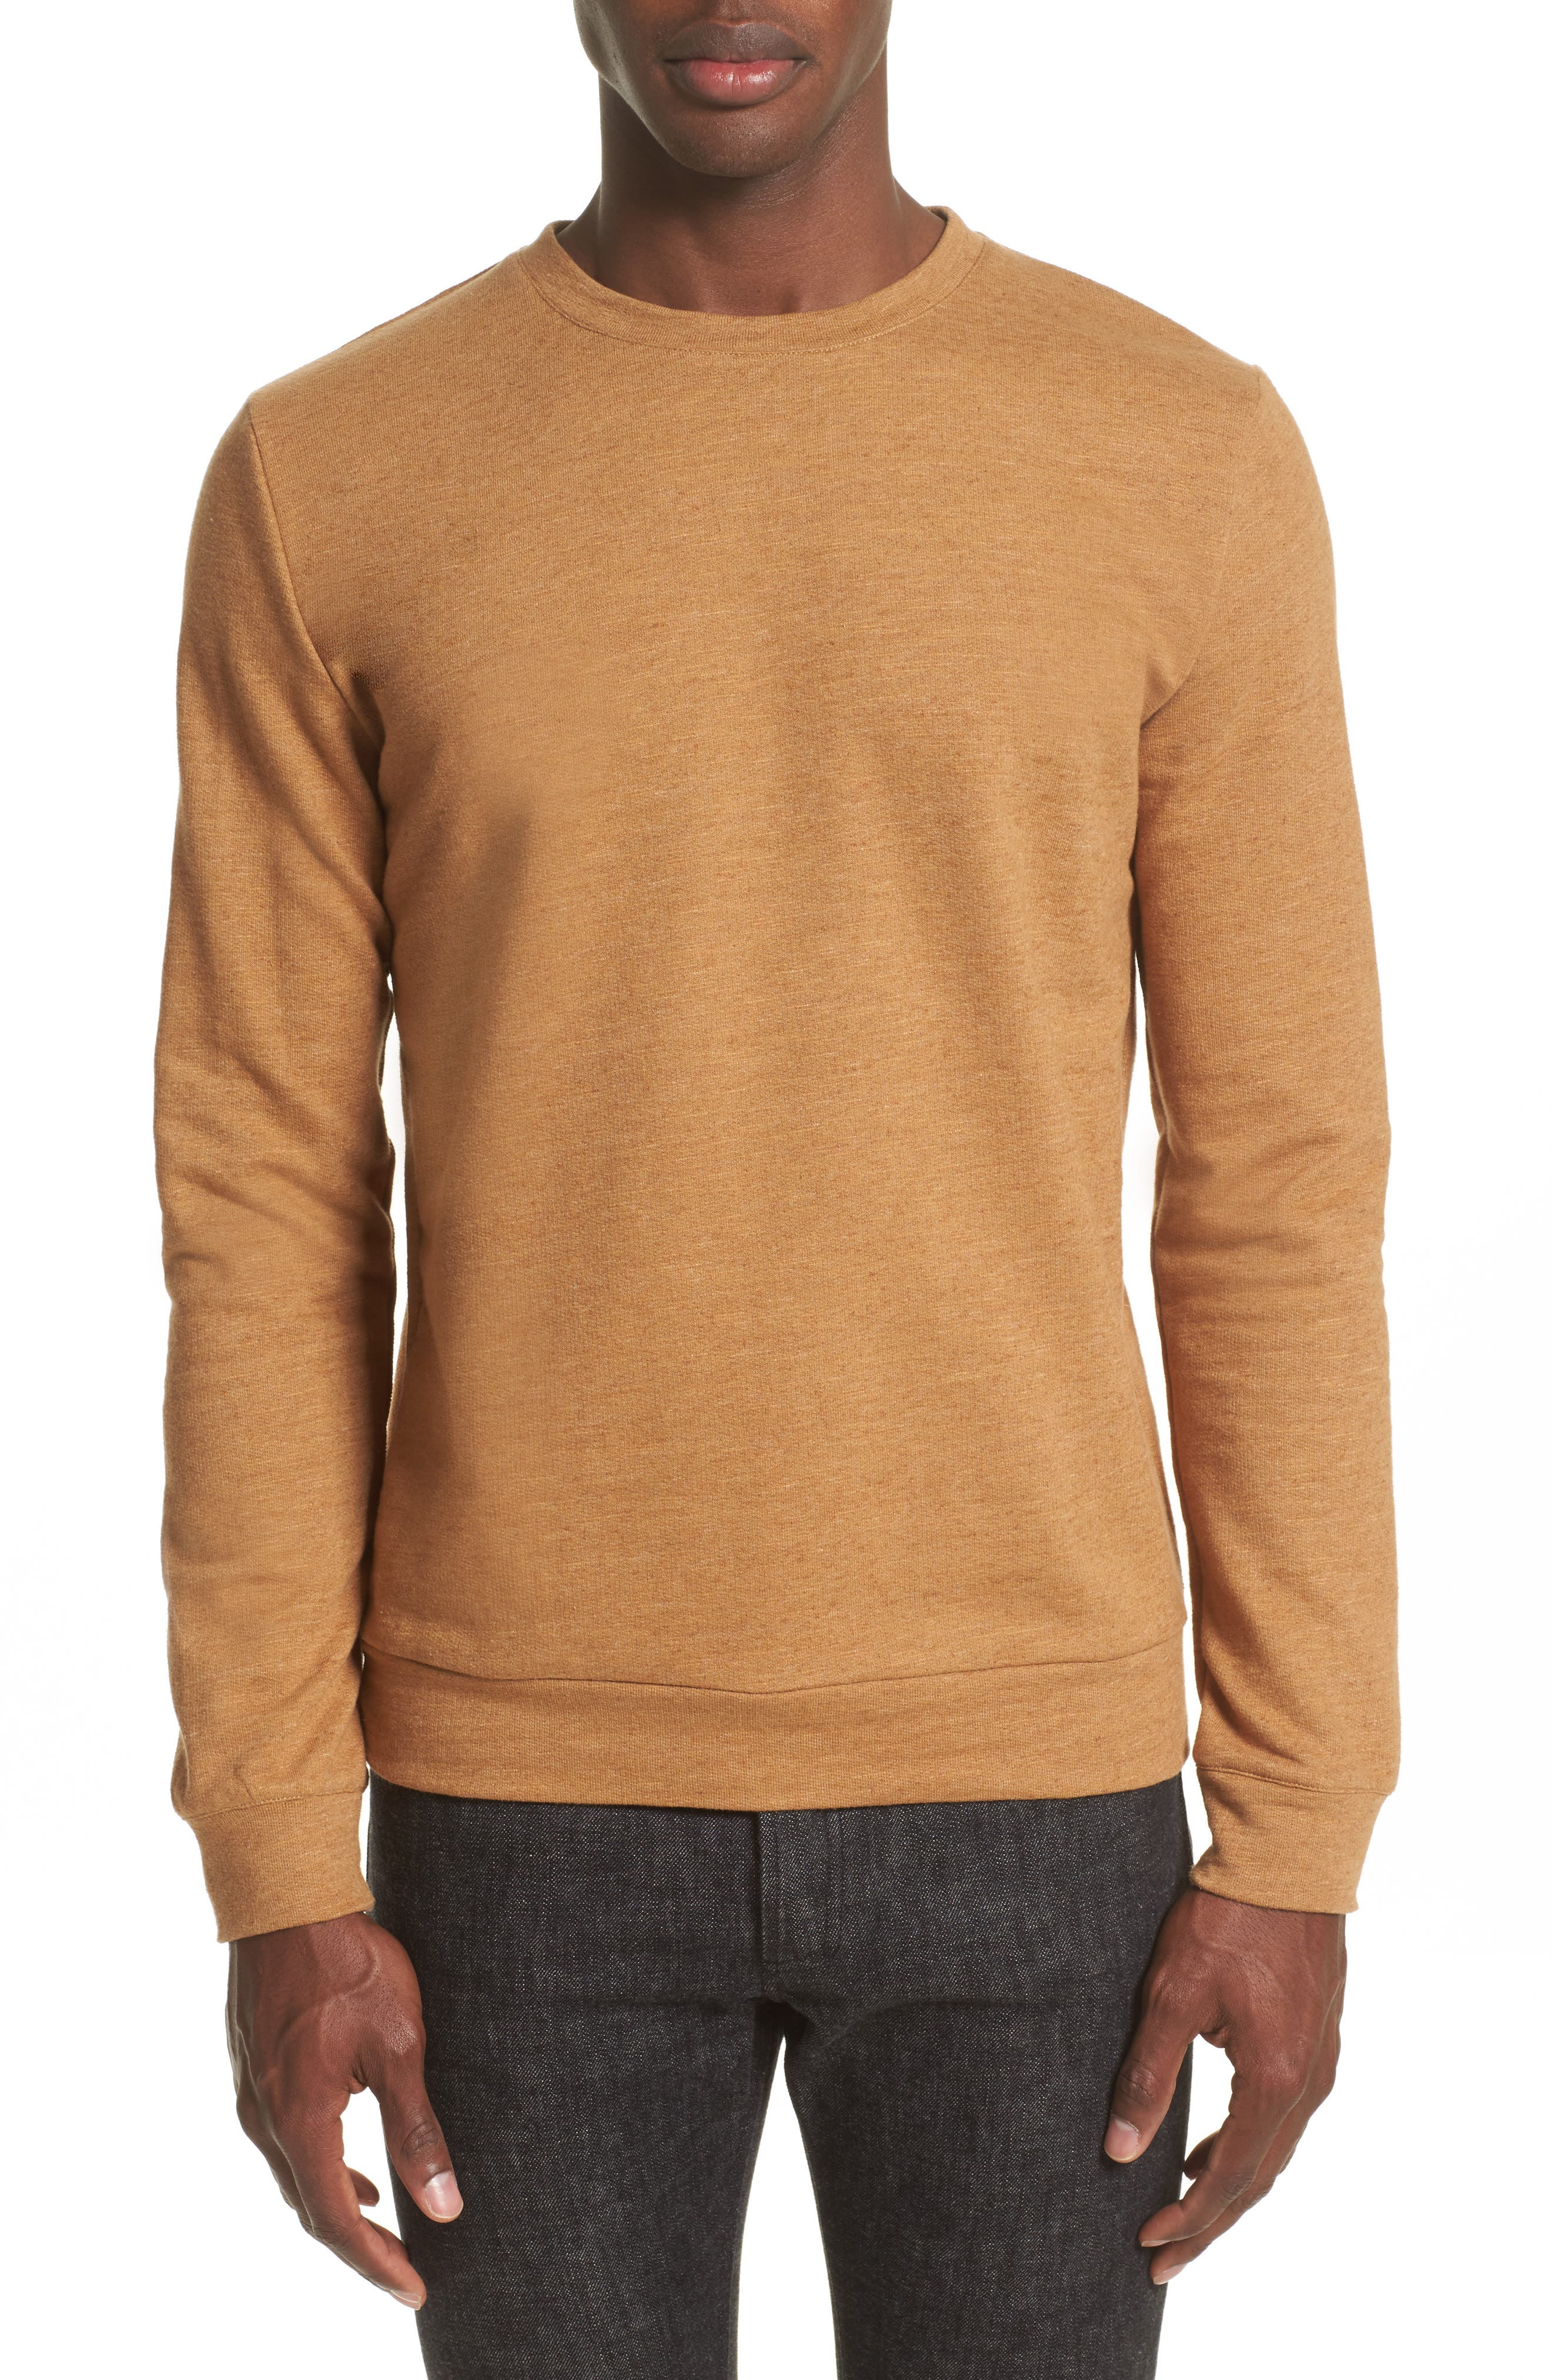 A.P.C. Joseph Trim Fit Sweatshirt